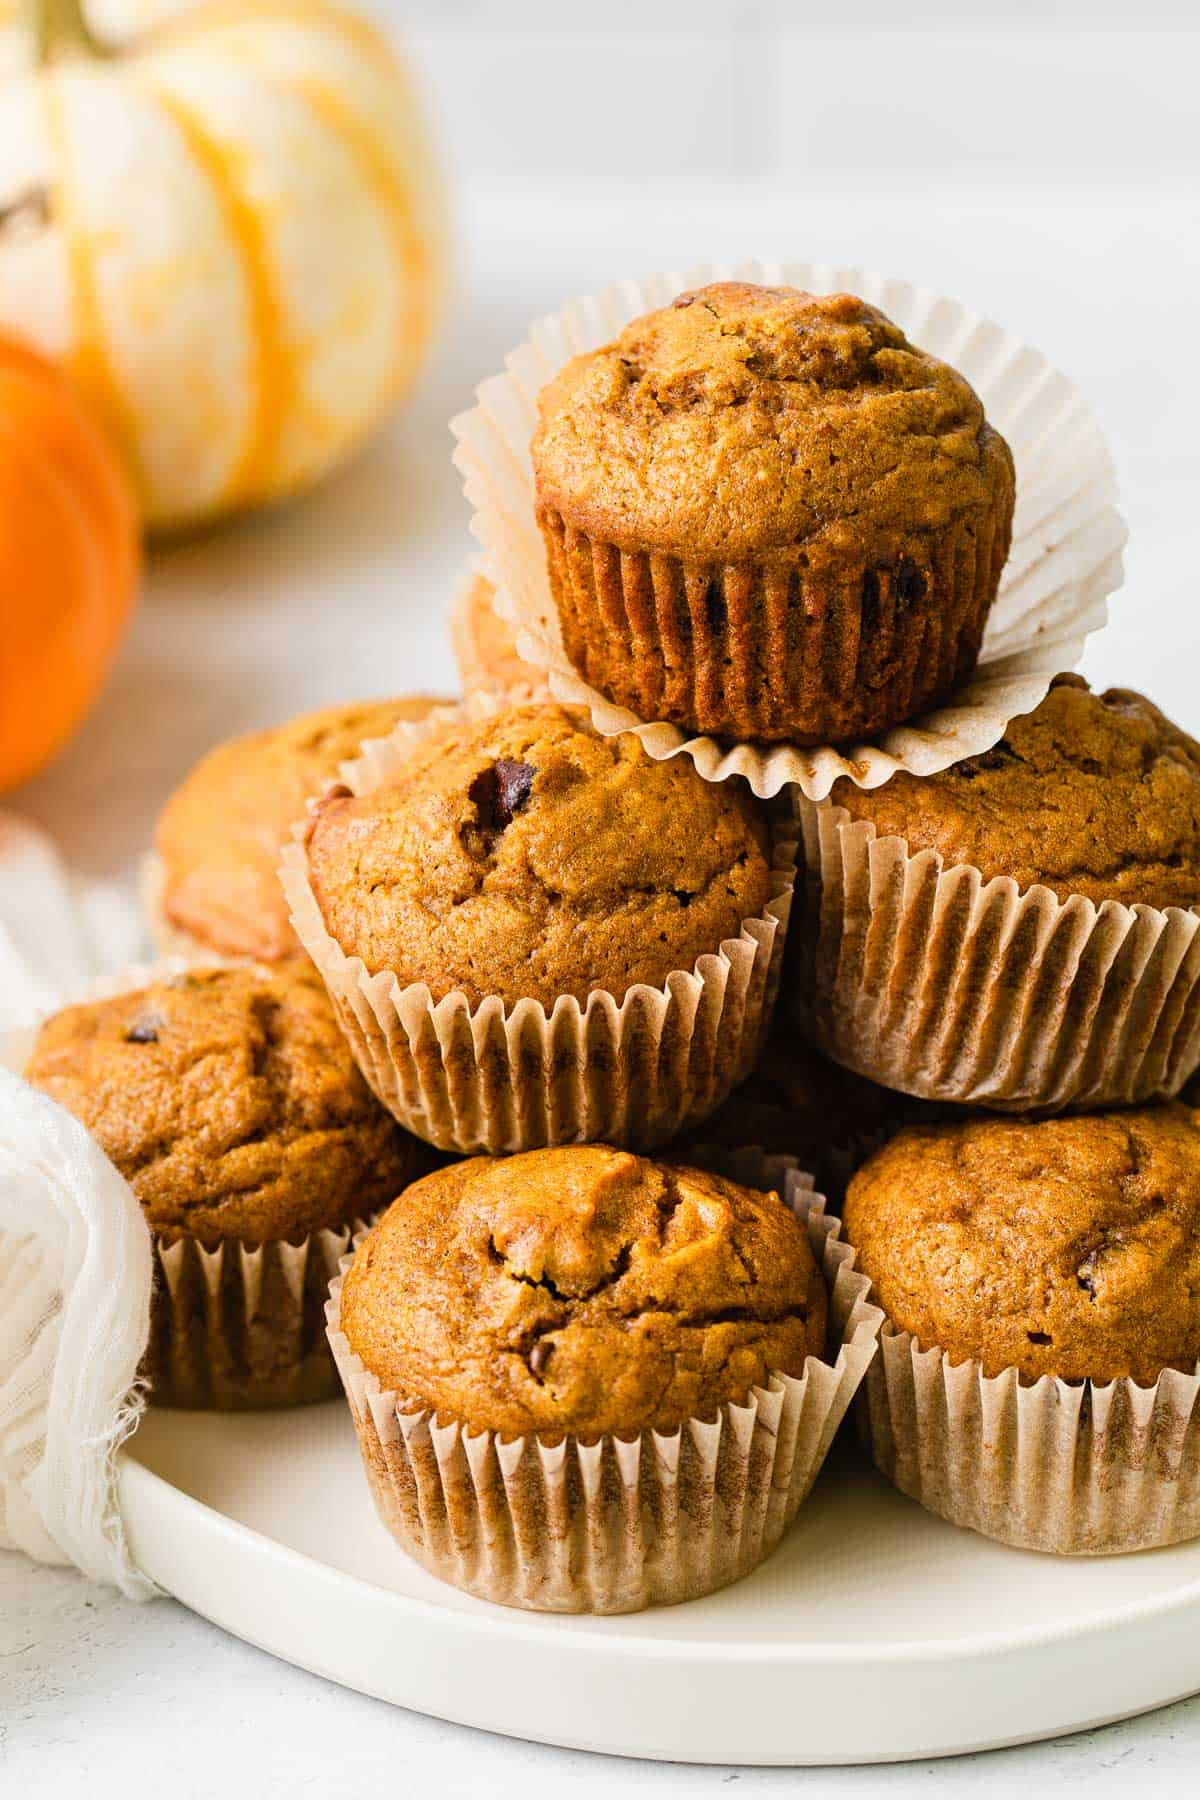 Pumpkin chocolate chip muffins stacked on a plate.